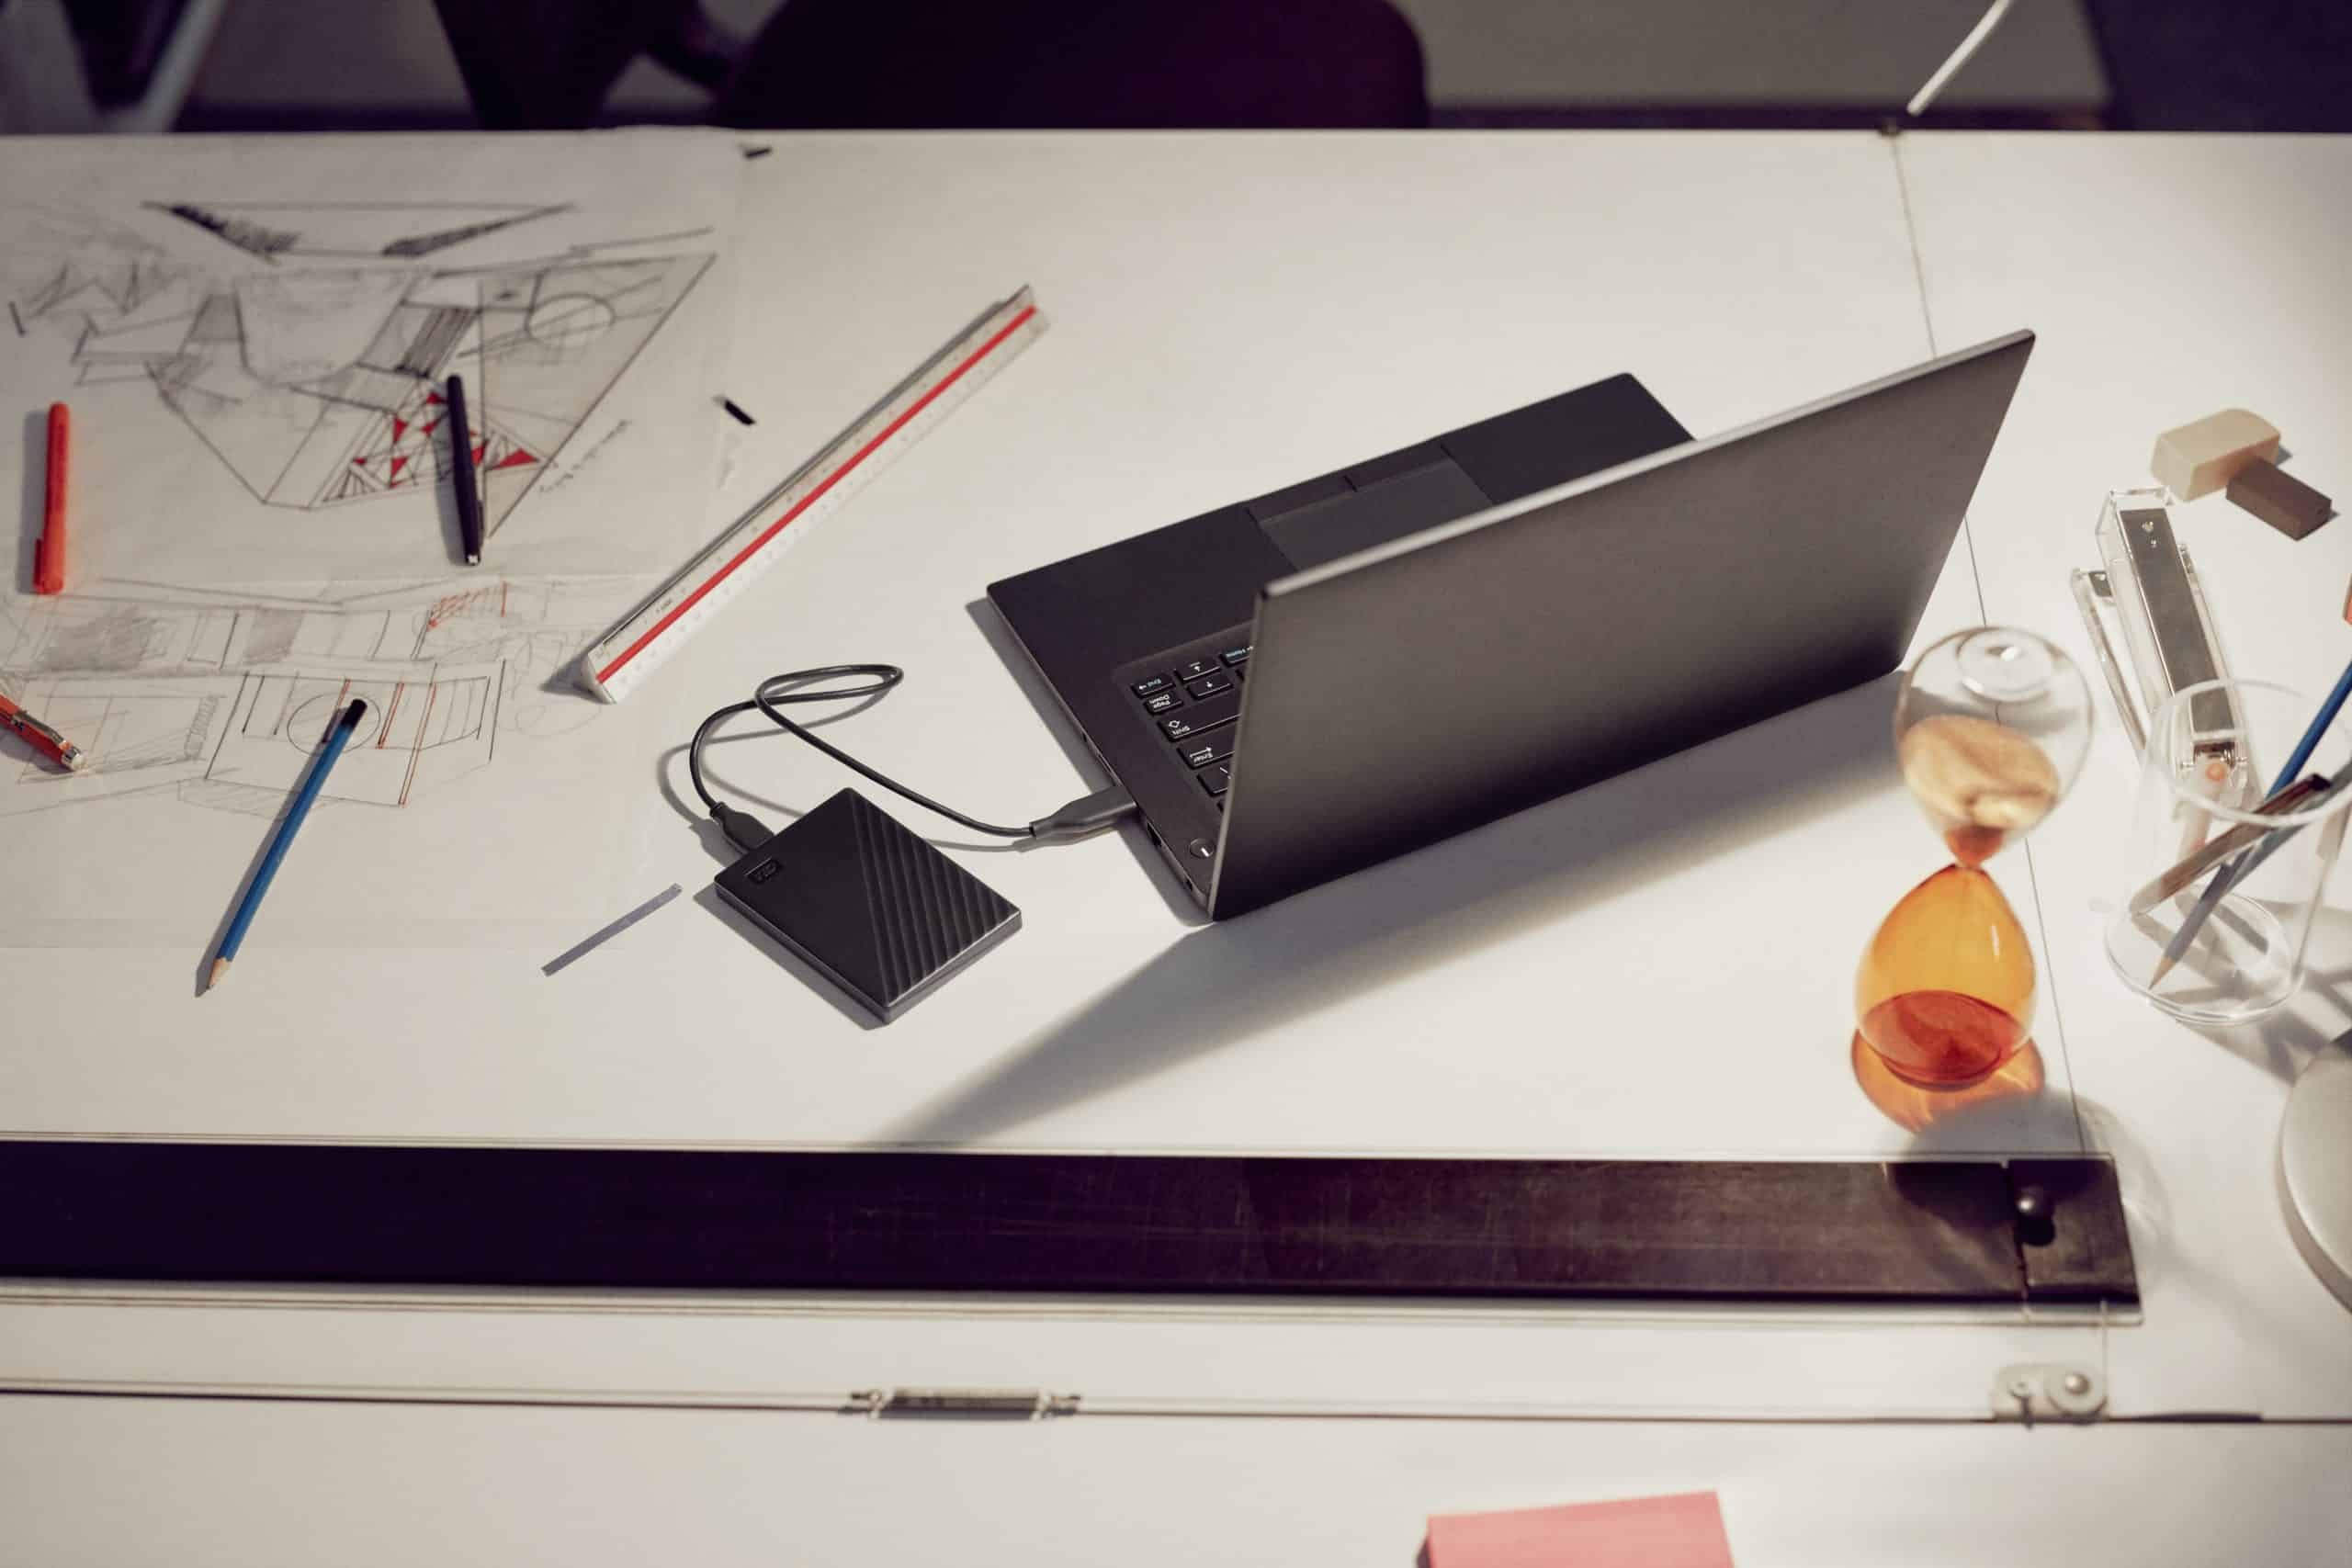 Western Digital offers product solutions to help users get organized, stay connected and maintain productivity while working from home/e-learning.